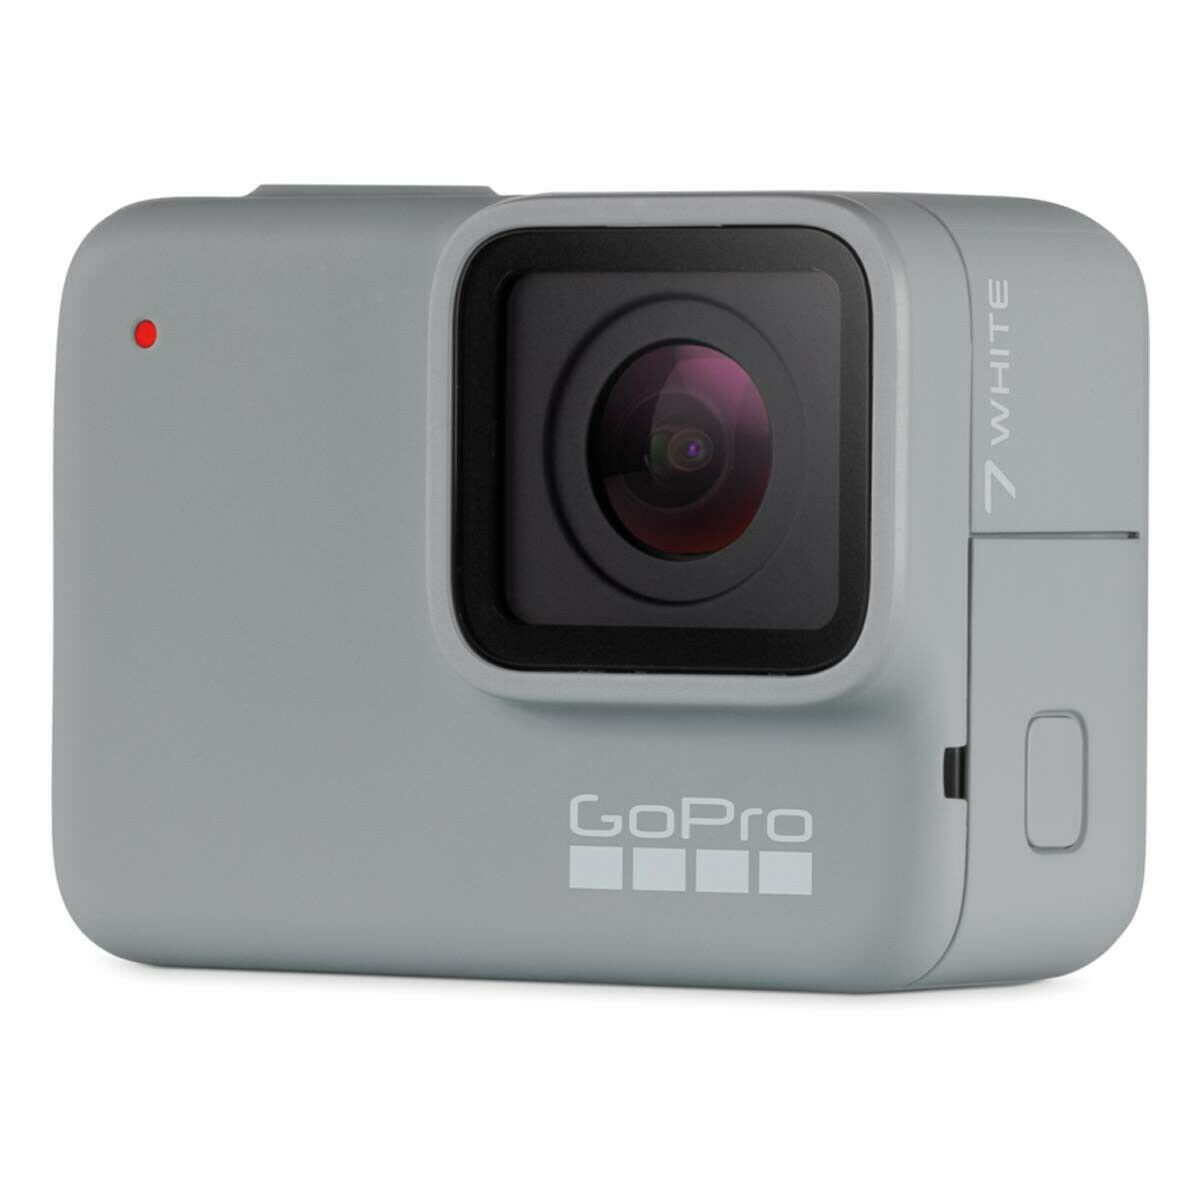 GOPRO HERO 7 WHITE - 10MP